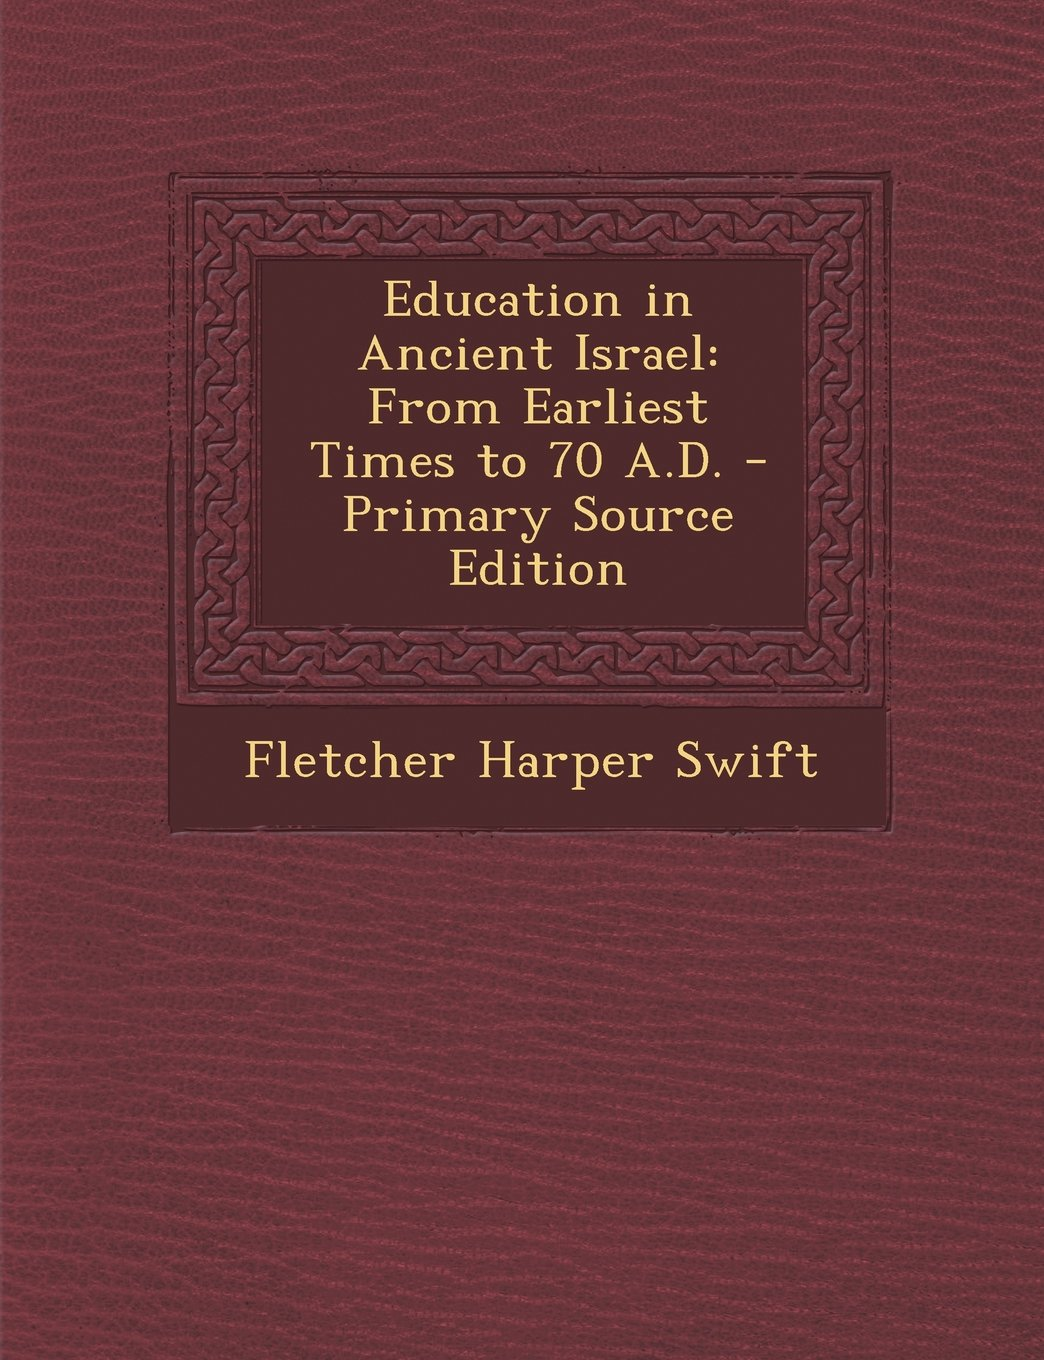 Education in Ancient Israel: From Earliest Times to 70 A.D. - Primary Source Edition PDF